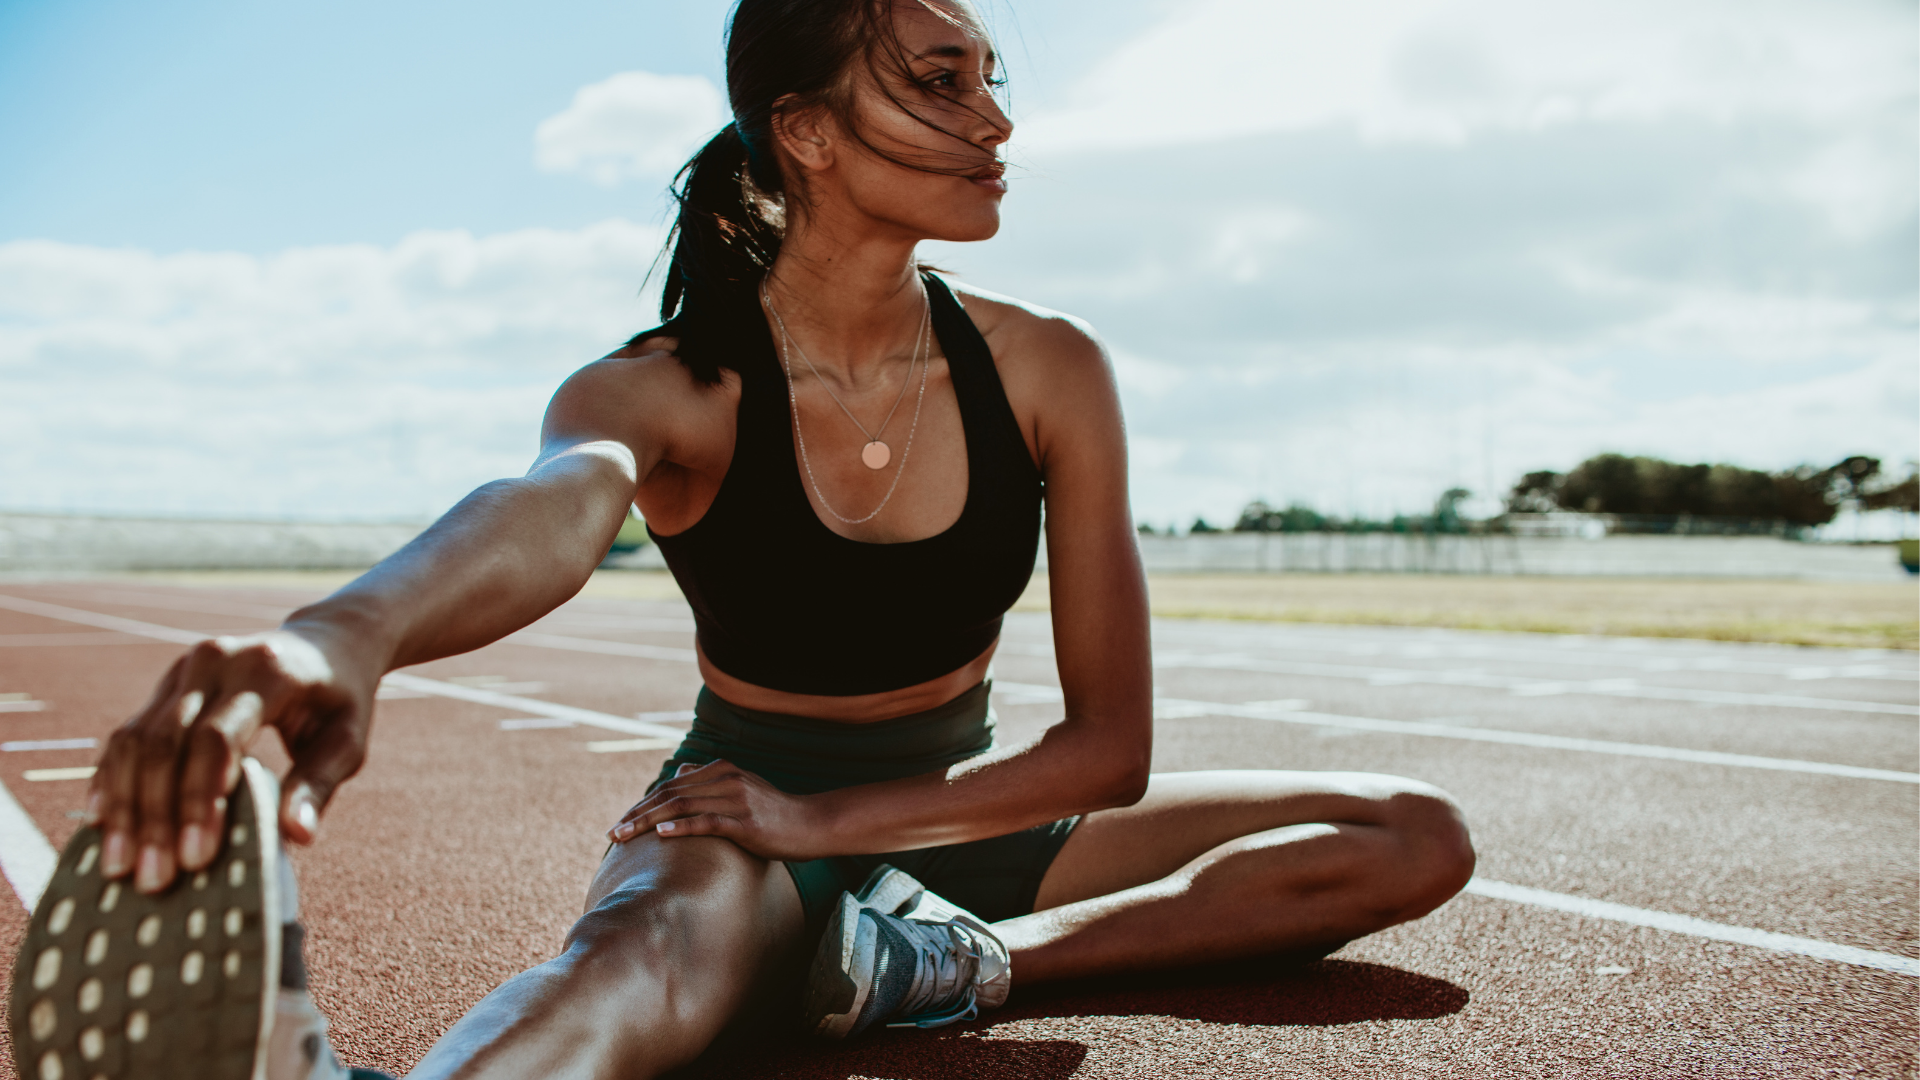 female runner stretching out